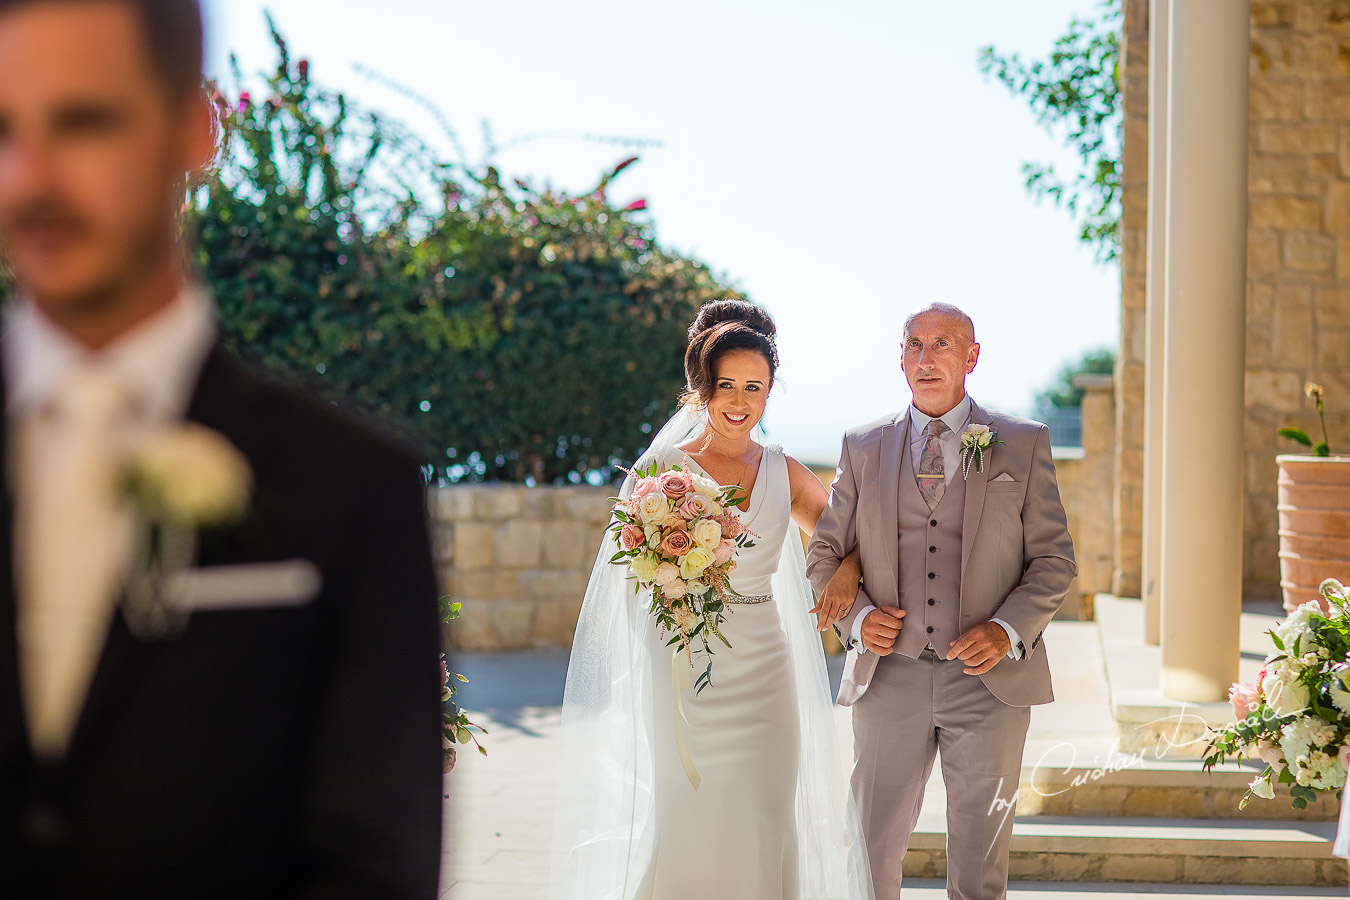 The bride is looking at her handsome groom, moments captured by Cristian Dascalu during an elegant Aphrodite Hills Wedding in Cyprus.